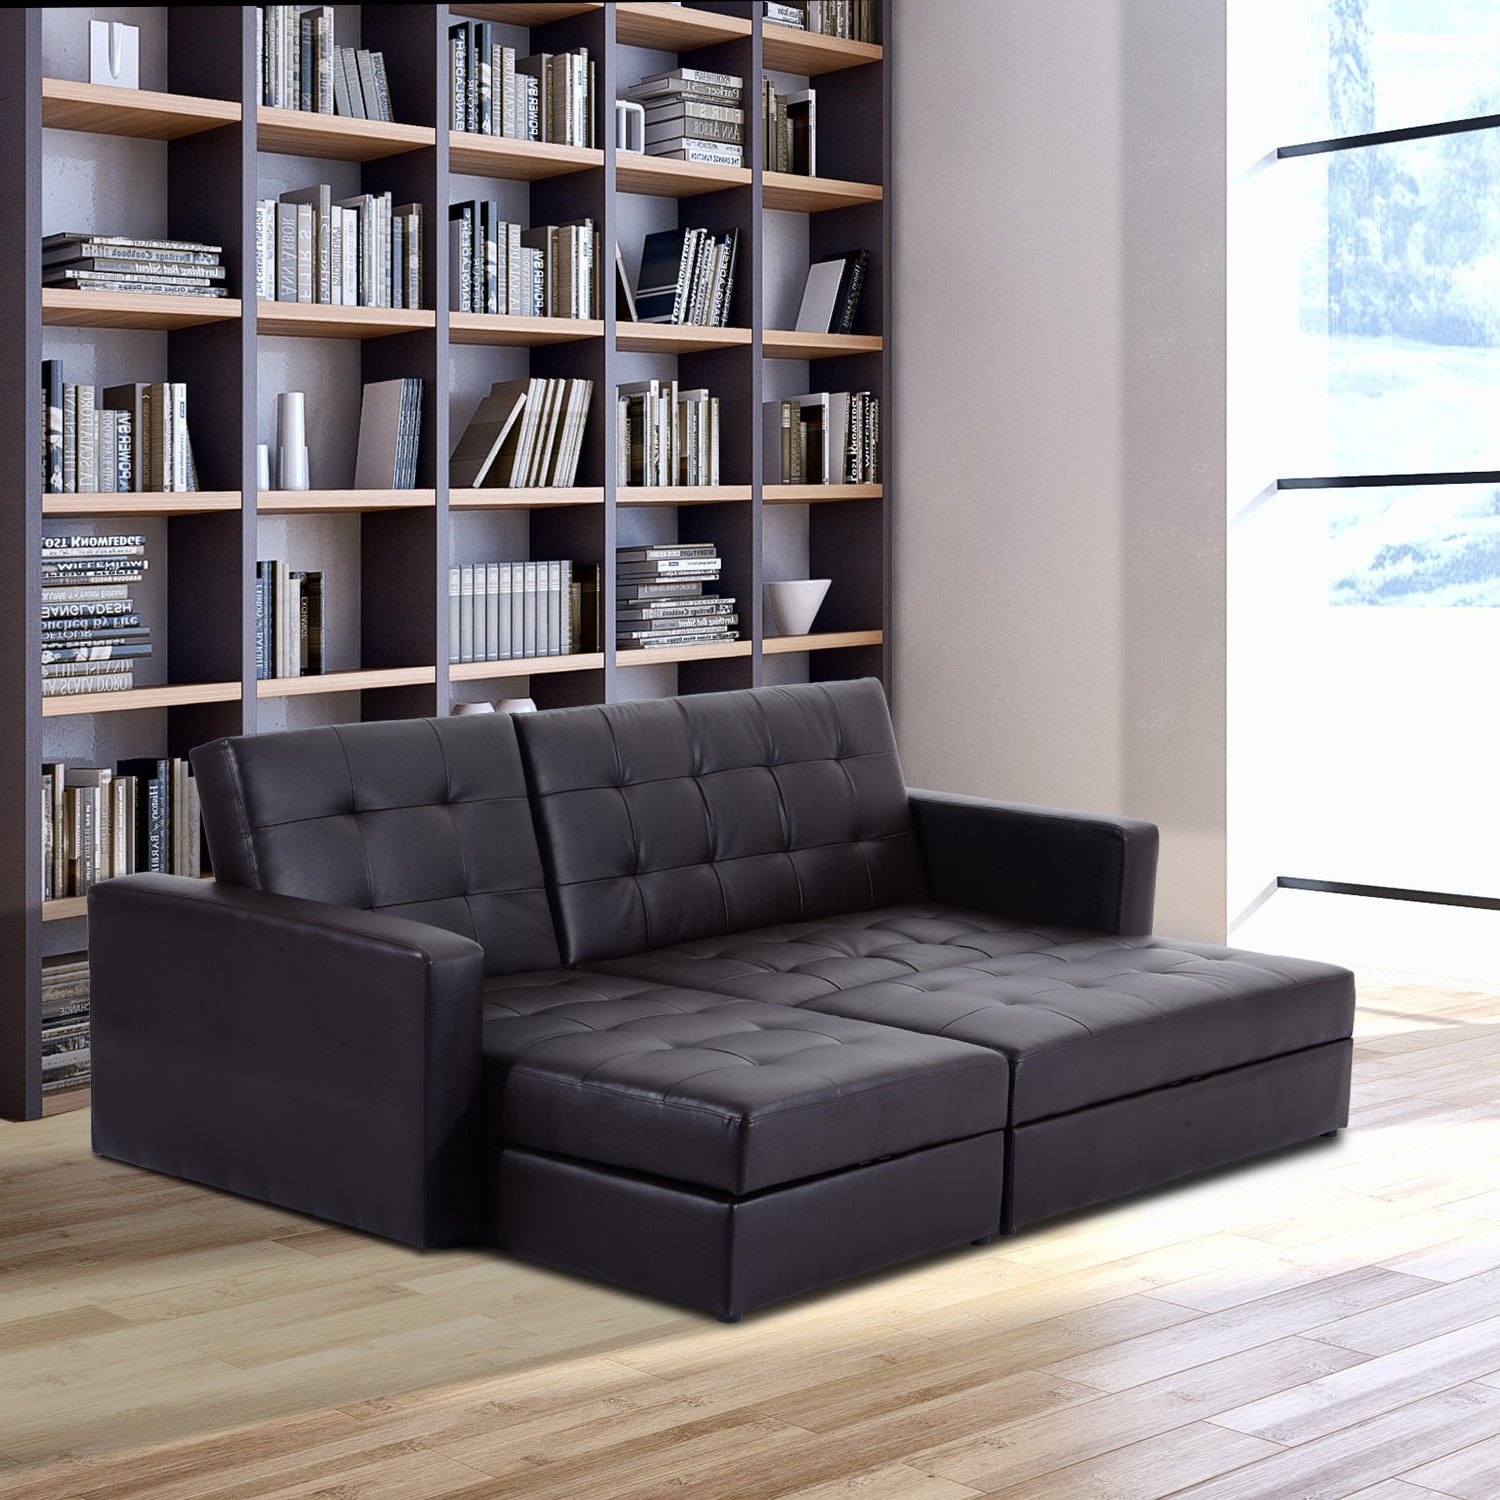 Storage+Sleeper+Couch+Sofa+Bed – Simply Style In Popular Hartford Storage Sectional Futon Sofas (View 17 of 25)